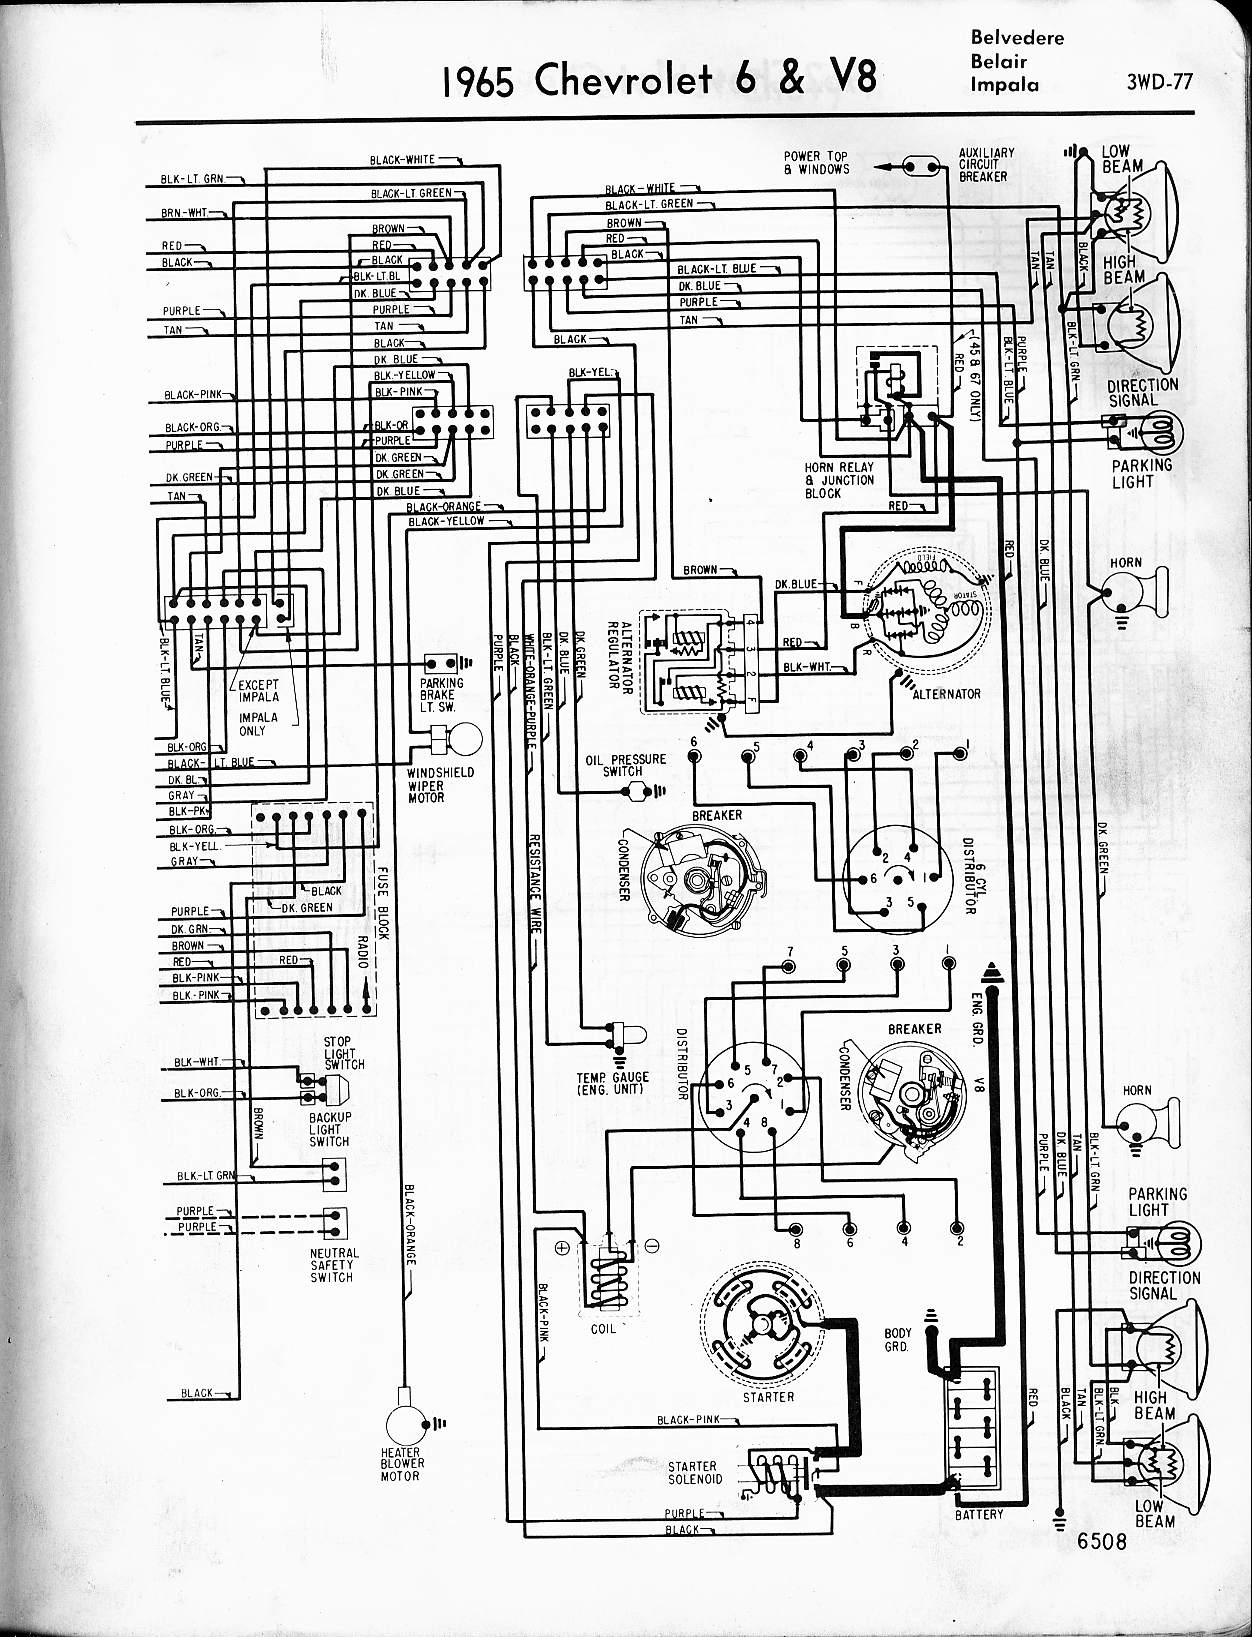 1968 Chevelle Alternator Wiring Diagram - Wiring Diagram Blog Data on 1968 amc javelin wiring diagram, 68 chevelle ignition diagram, 1968 chevy impala wiring diagram, 1969 chevy camaro wiring diagram, 1968 pontiac catalina wiring diagram, 1968 jaguar xke wiring diagram, 1968 jeep cj5 wiring diagram, 1968 chevy c10 wiring, 1955 chevy bel air wiring diagram, 68 impala wiring diagram, 1968 chevy pickup wiring diagram, 1963 chevy nova wiring diagram, 1968 dodge dart wiring diagram, 1968 mustang tach wiring diagram, 1968 ford falcon wiring diagram, 1968 cadillac deville wiring diagram, 1968 chevy van wiring diagram, 1985 el camino ignition wiring diagram, 1968 oldsmobile cutlass wiring diagram, 1968 chevy c10 fuse block,